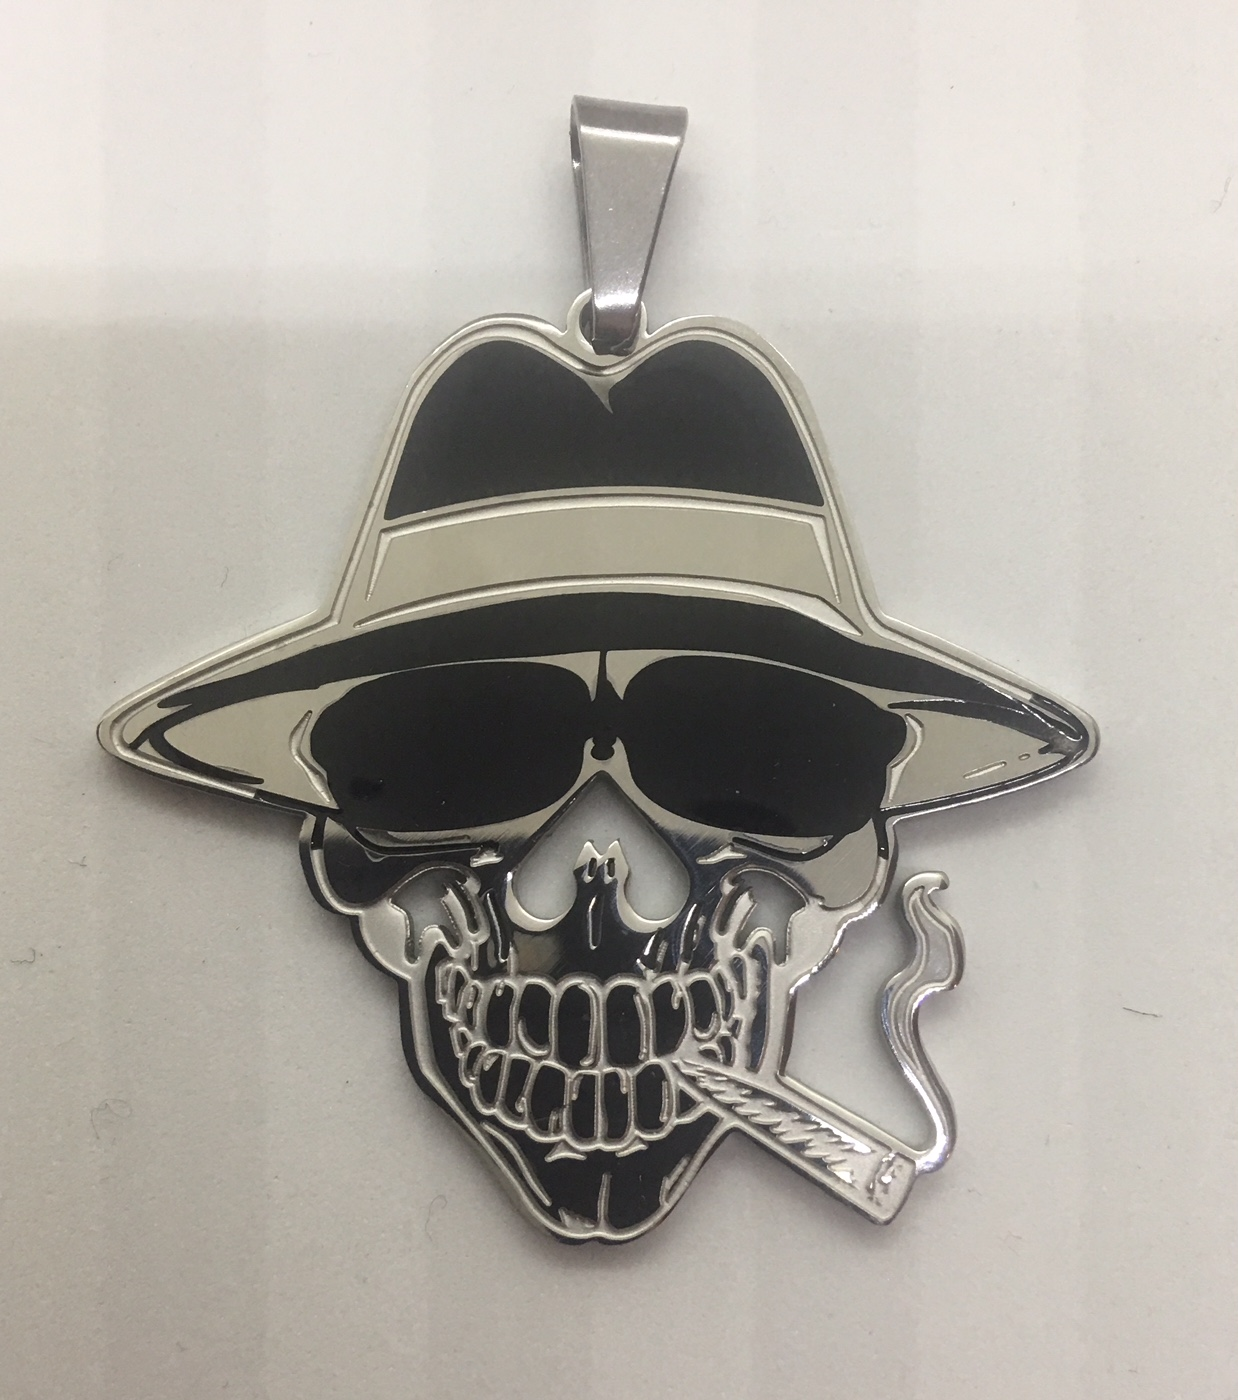 Mobstyle Music 2″ Smoking Joe Stainless Steel Charm